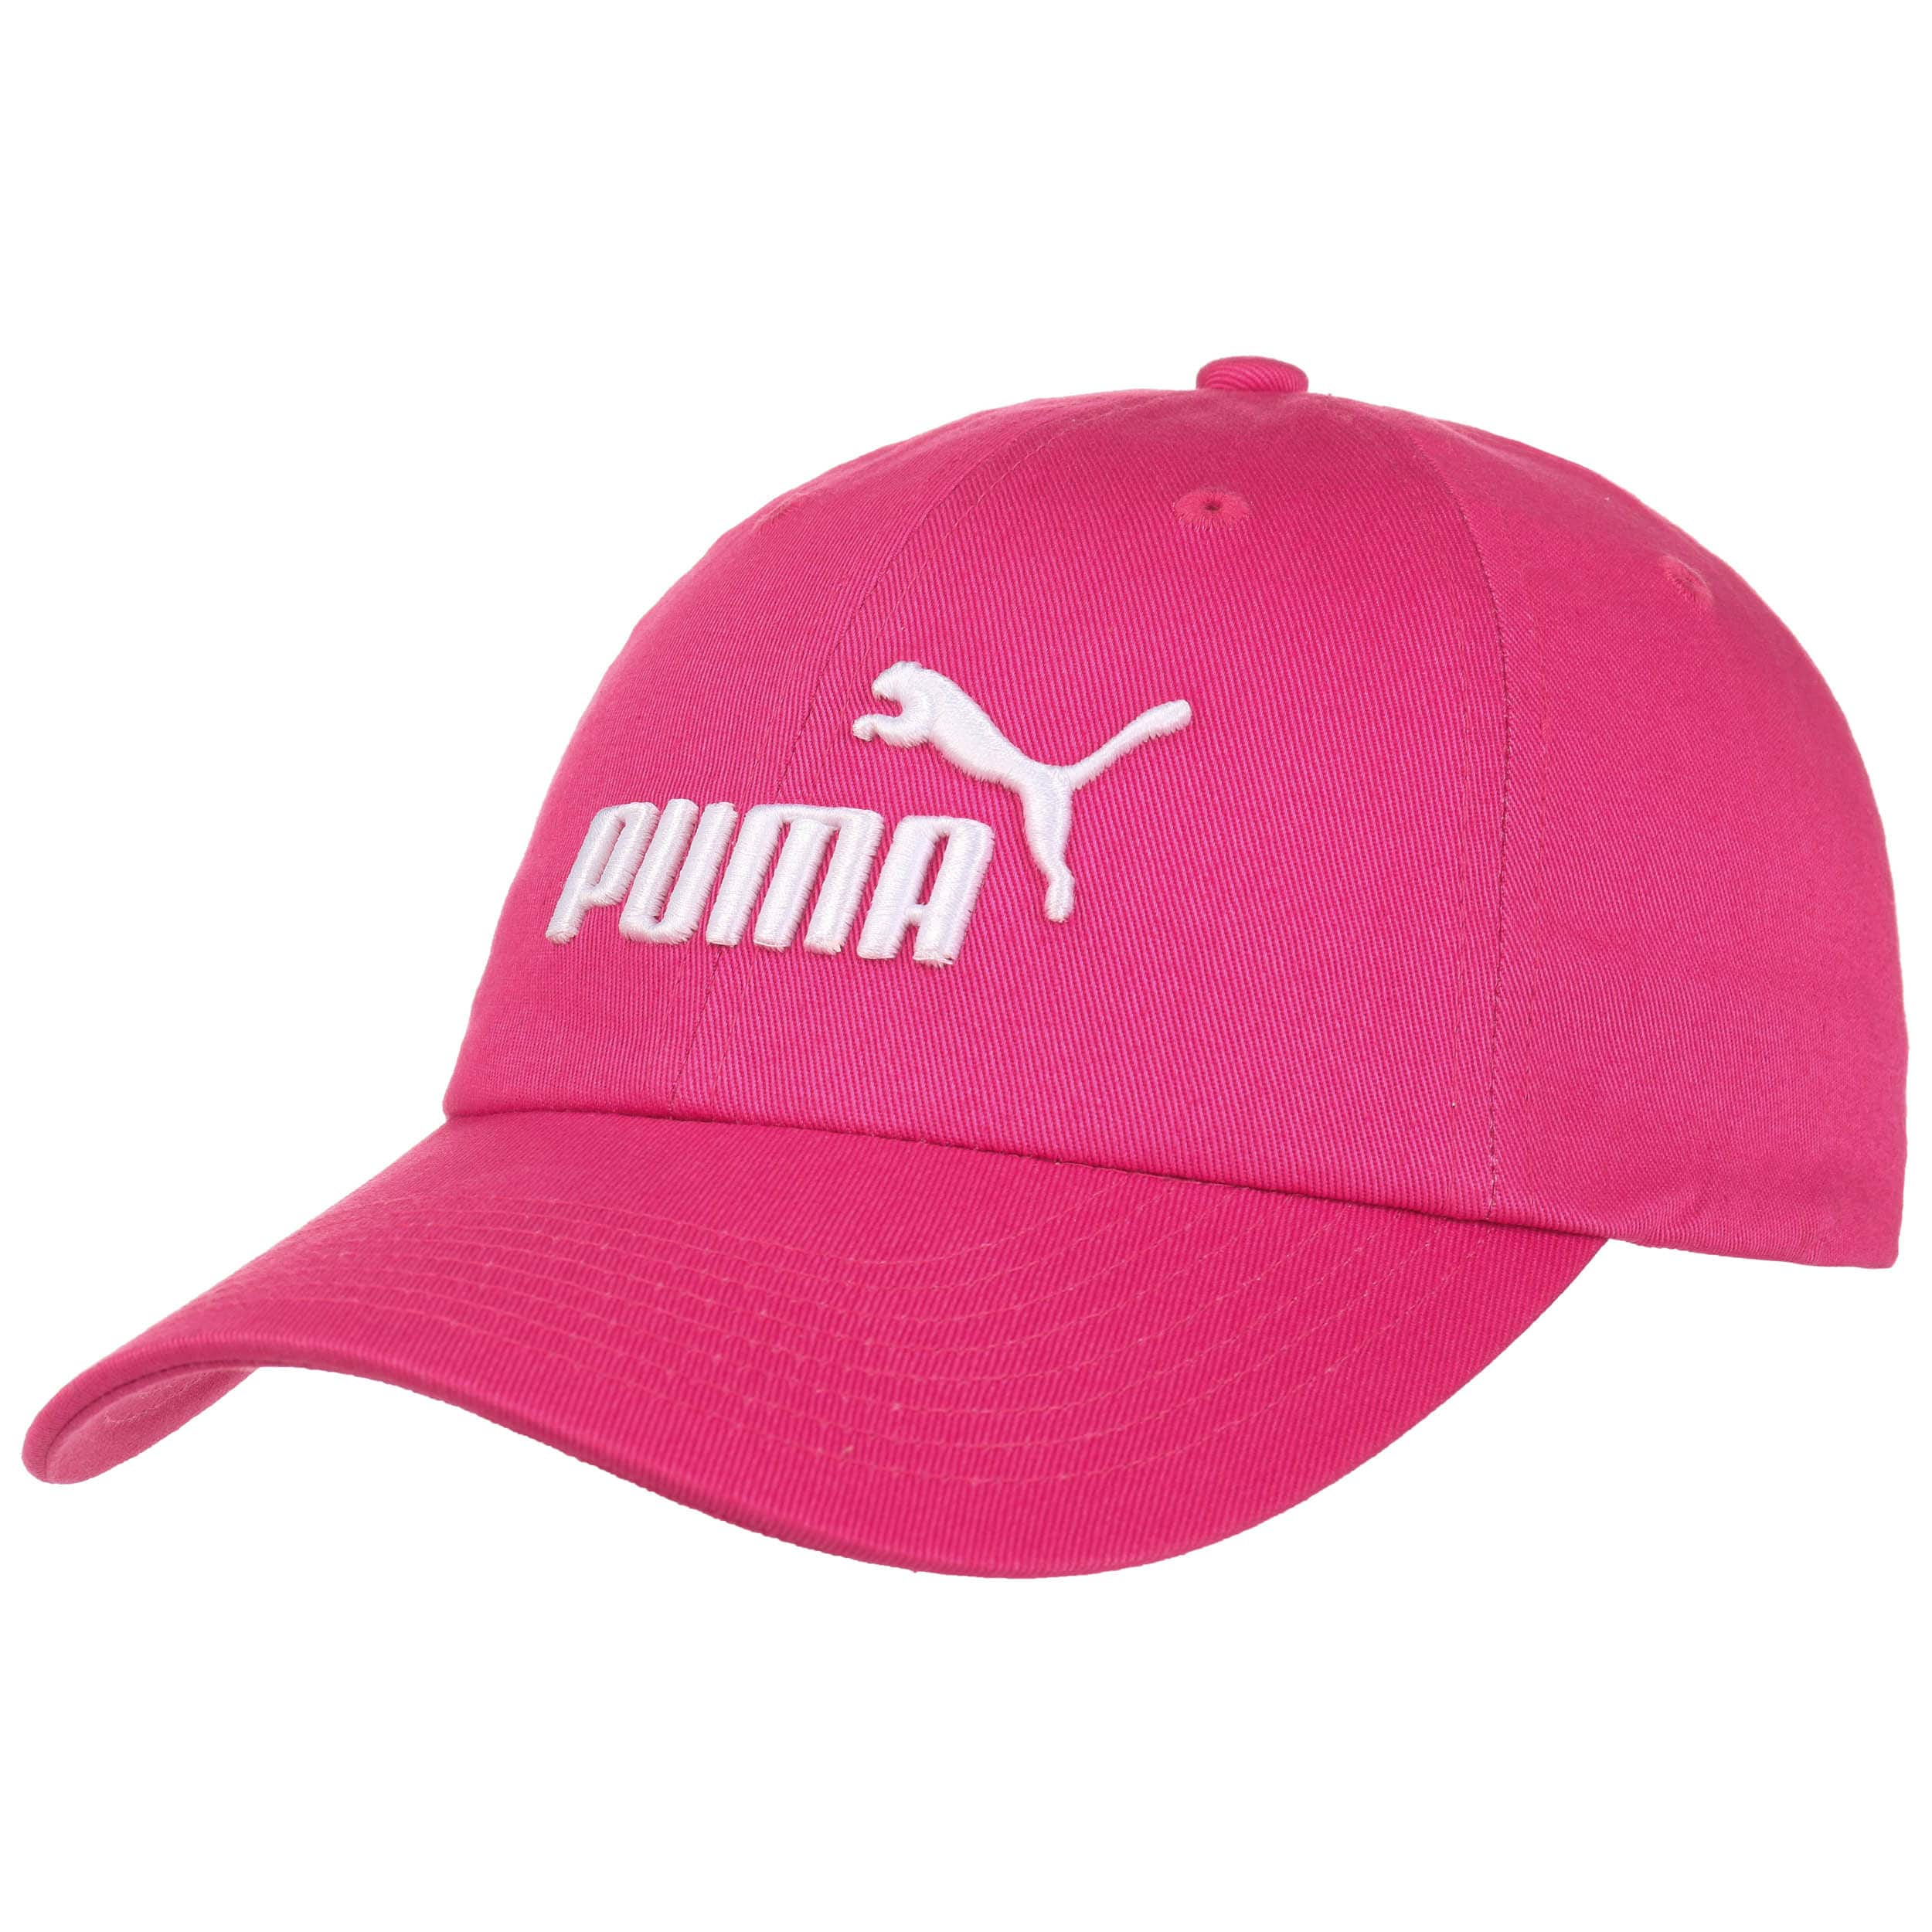 de54a3ce40f ... coupon 1 baseball cap by puma 5 5bef6 d95c6